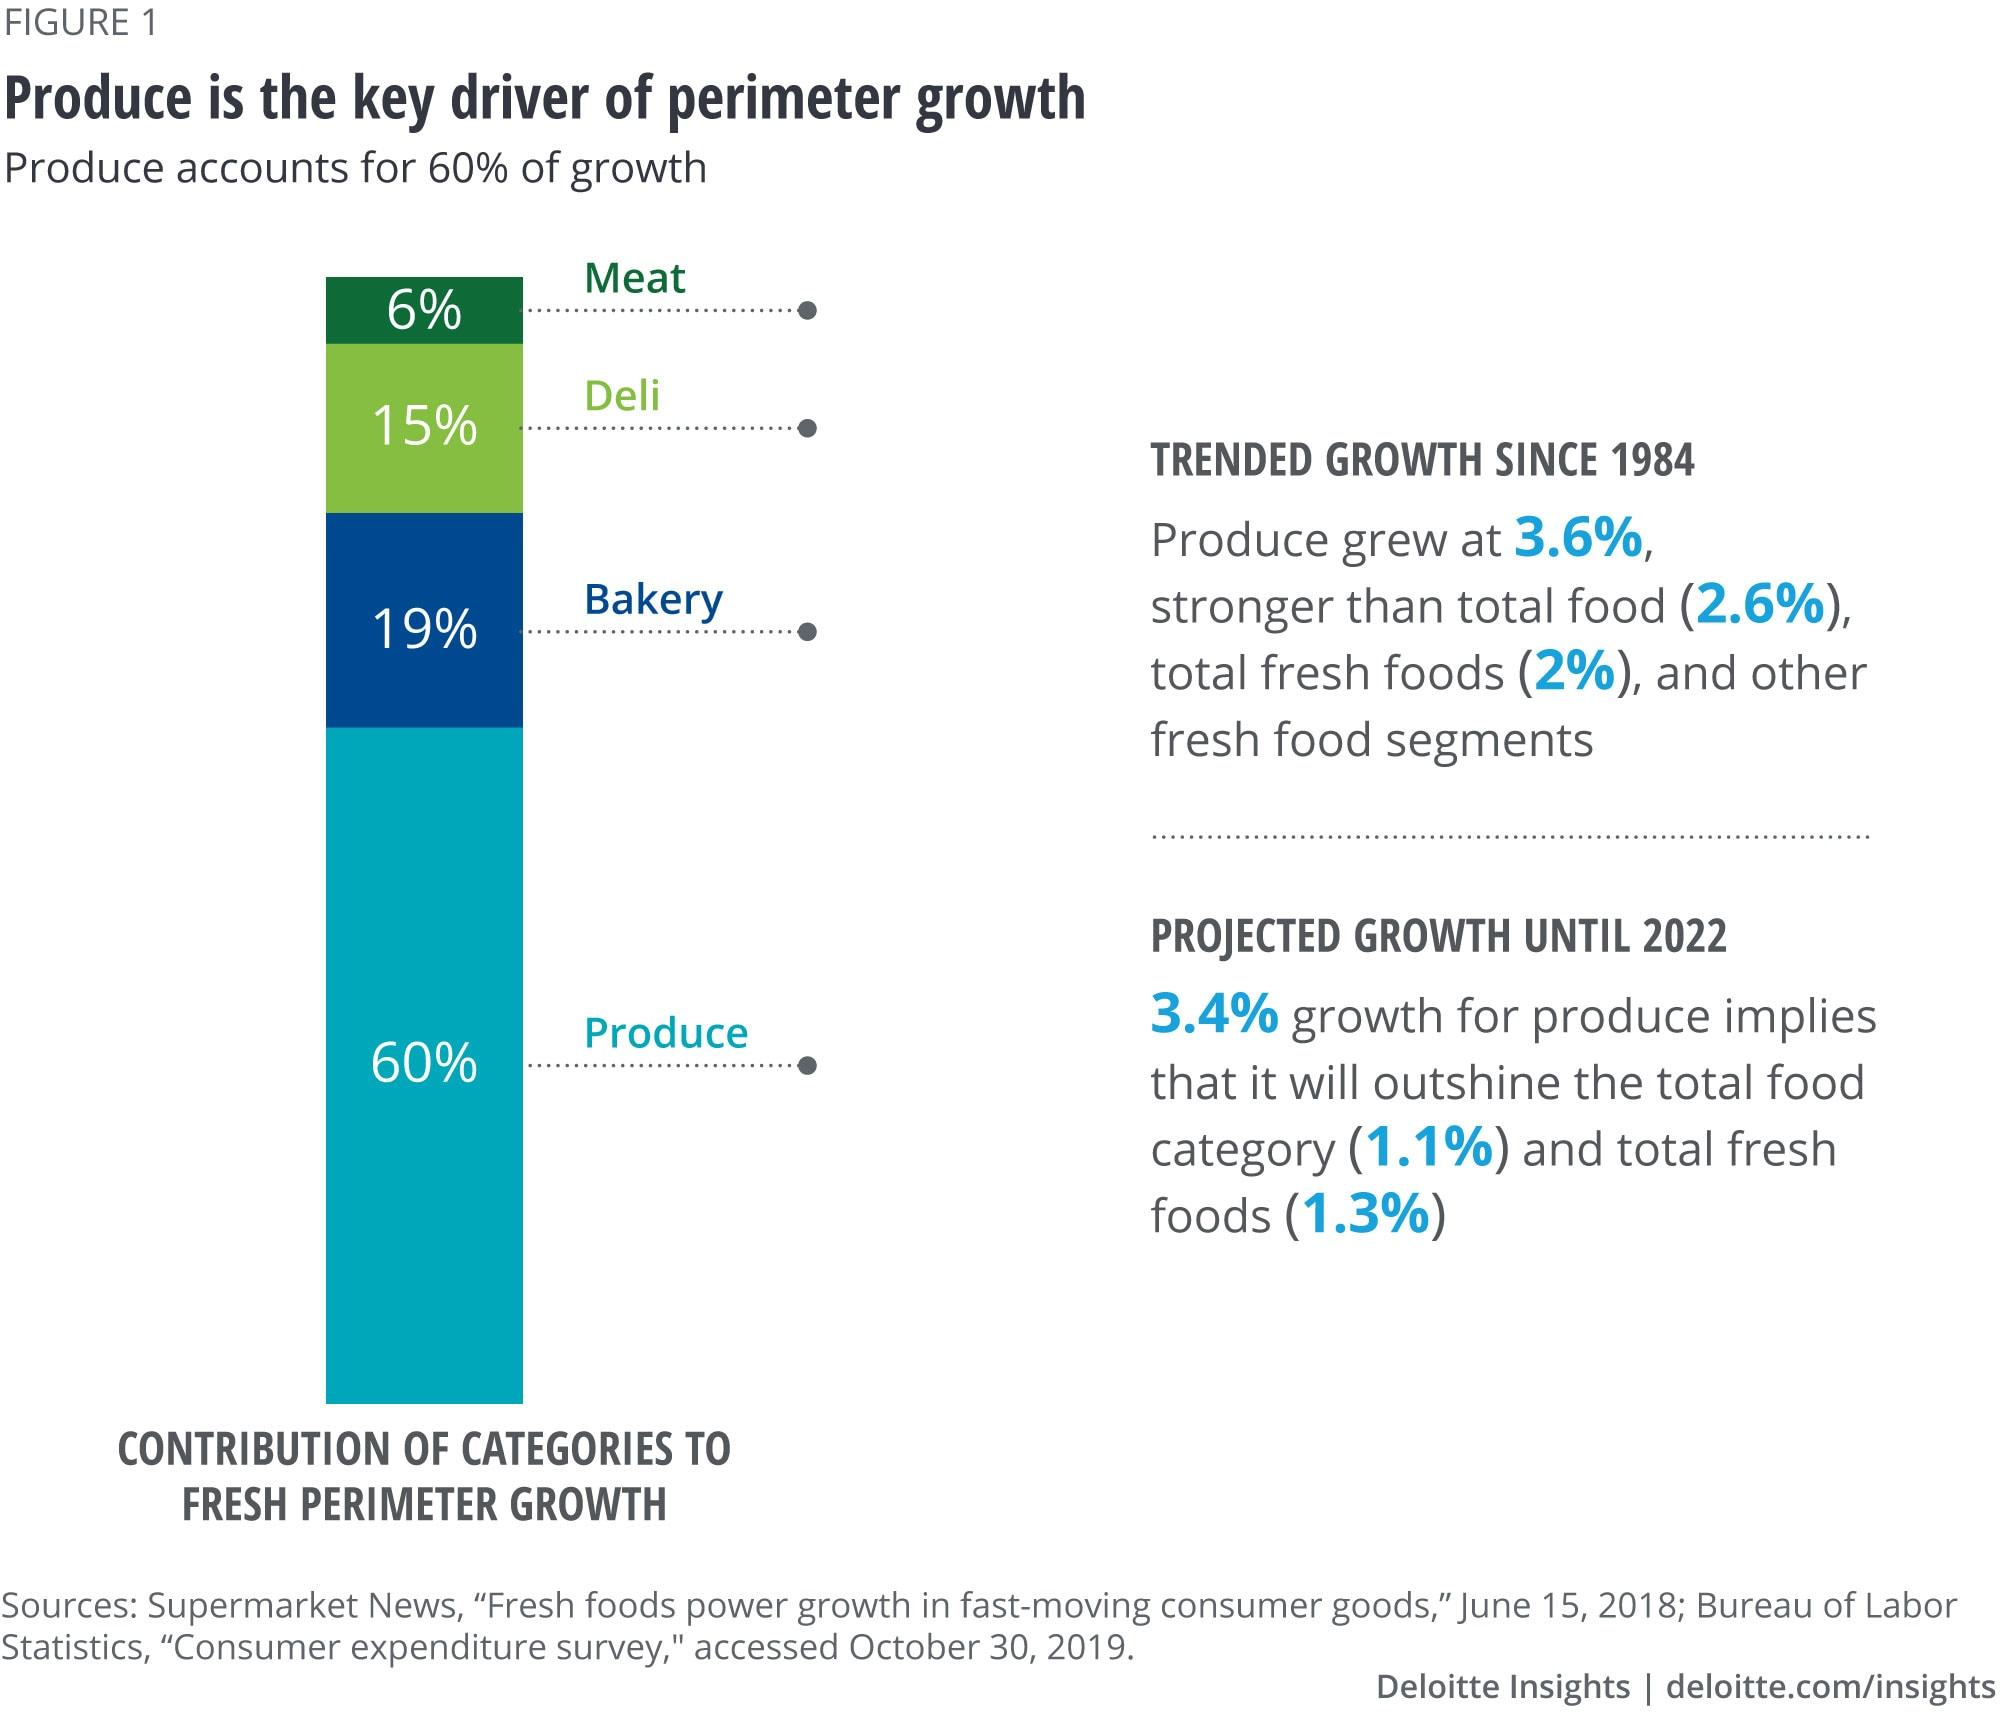 Produce is the key driver of perimeter growth